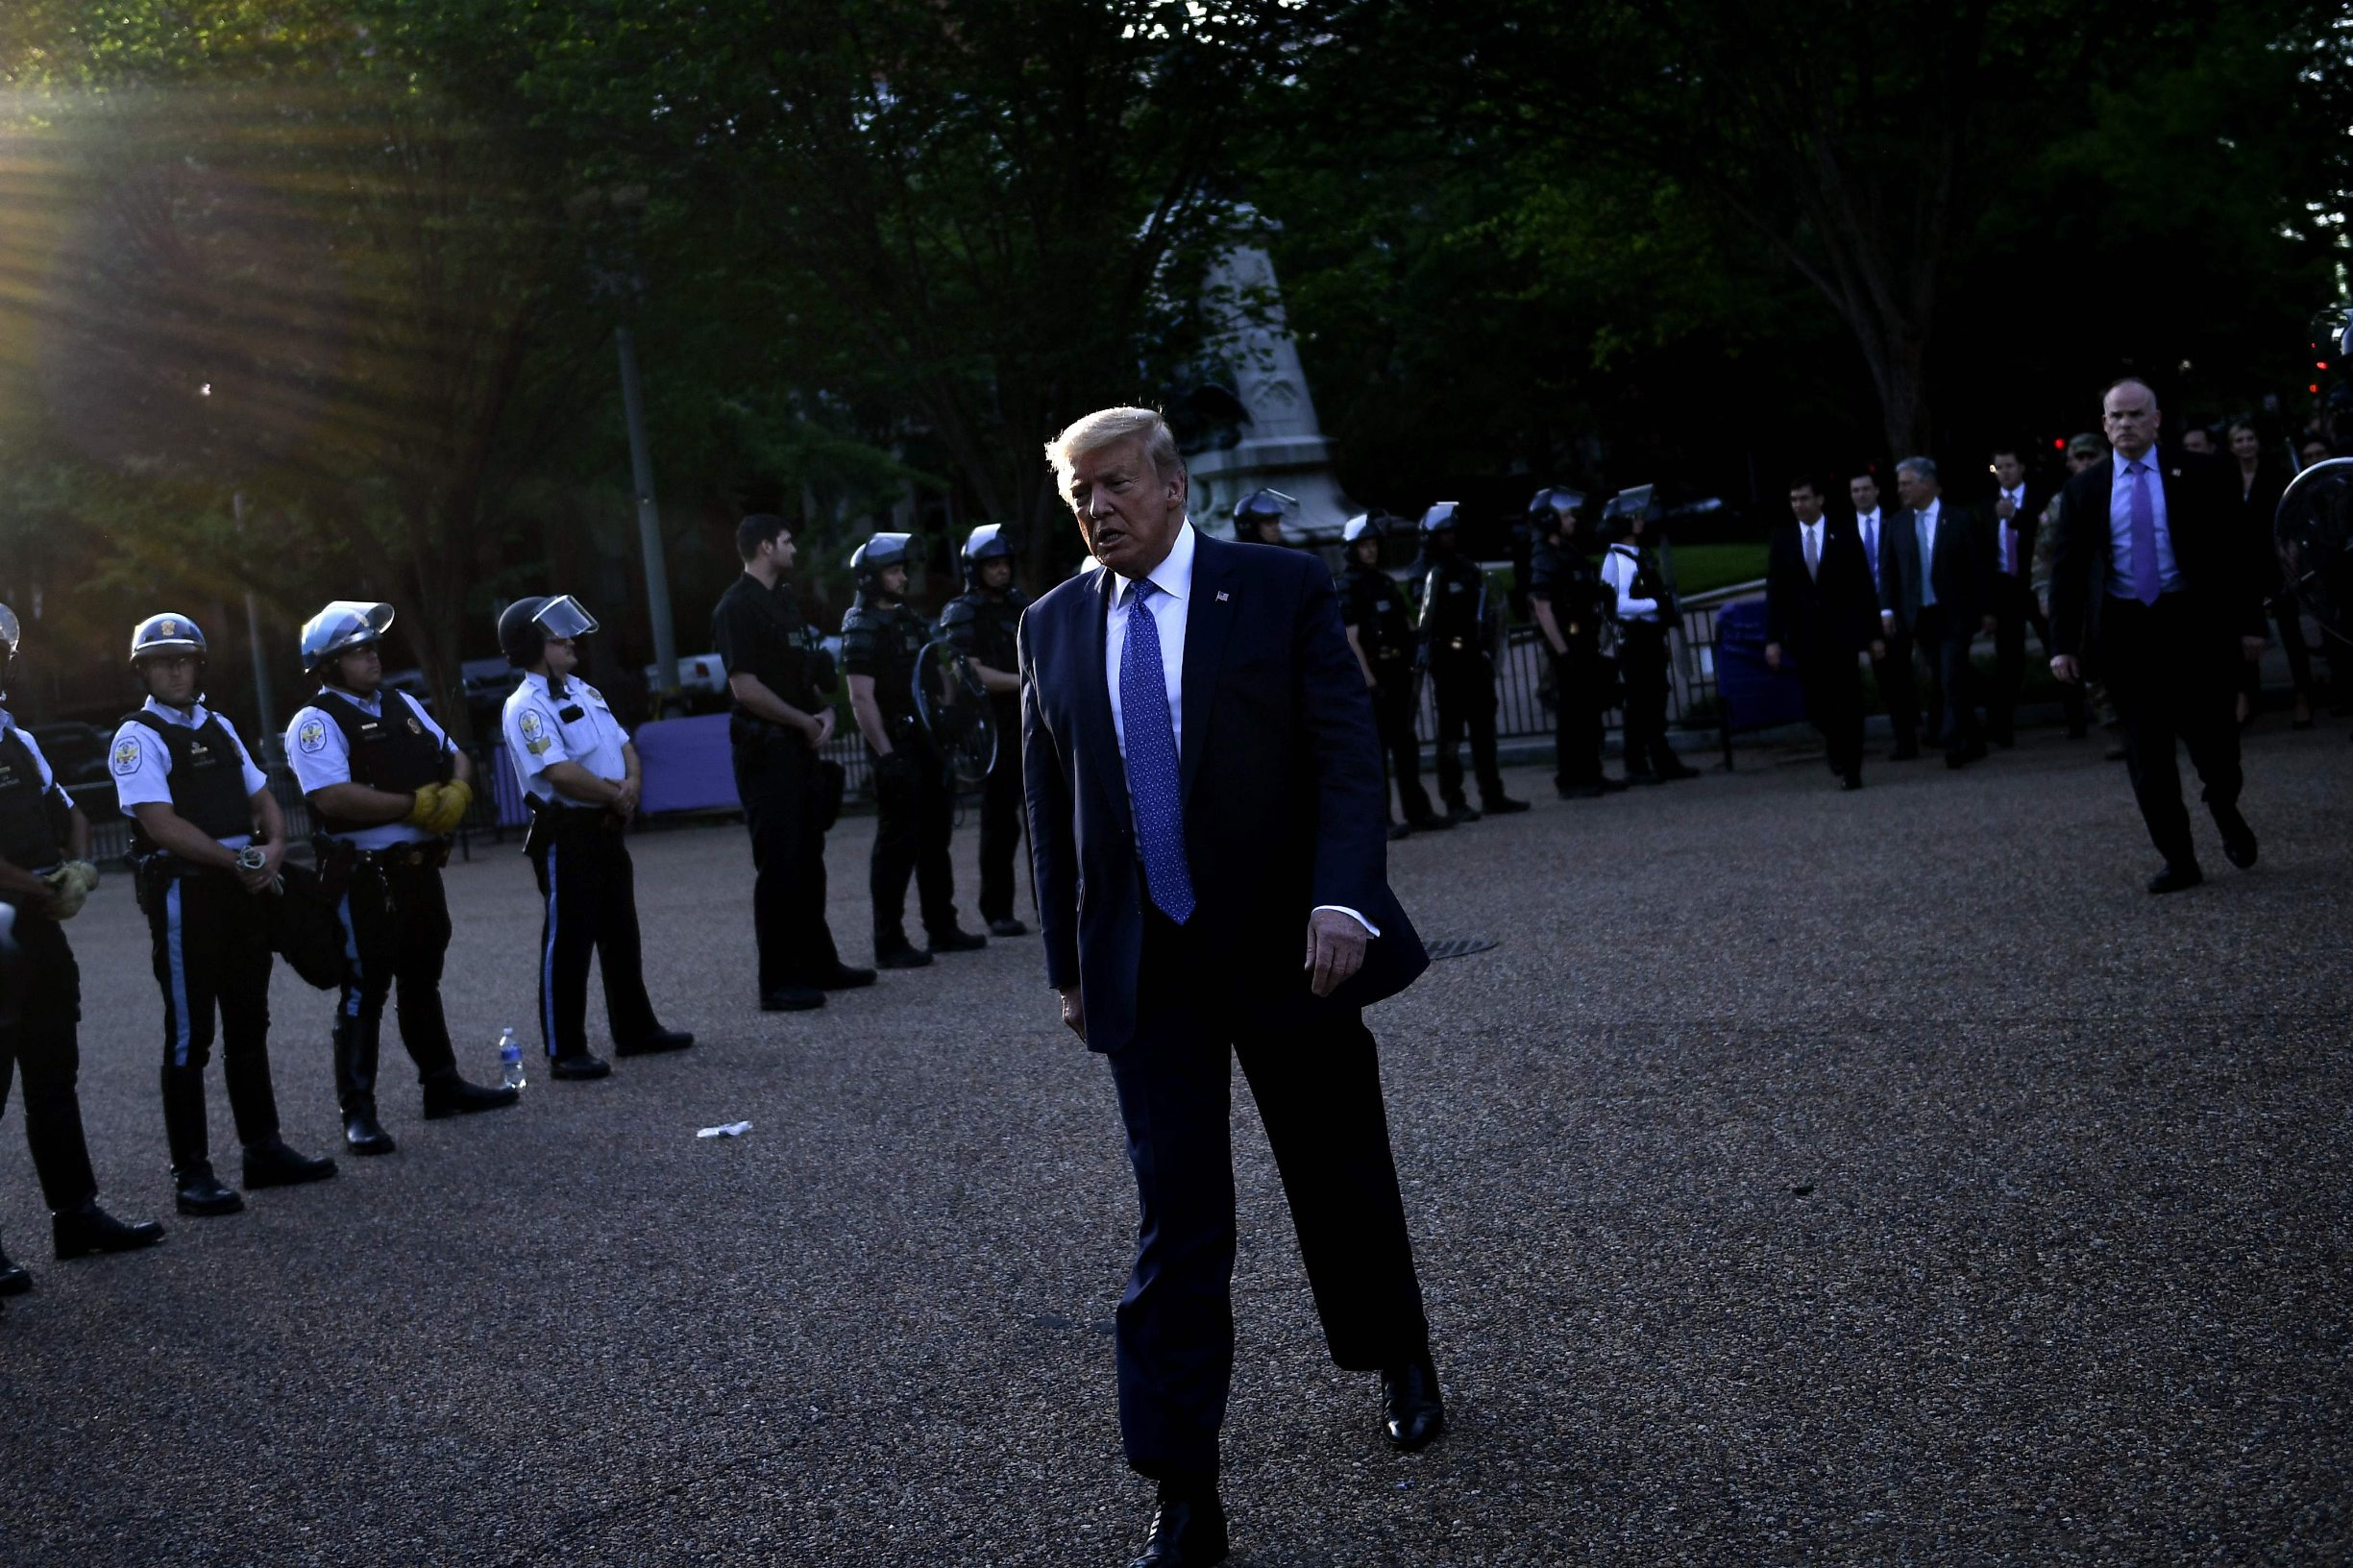 US President Donald Trump walks back to the White House escorted by the Secret Service after appearing outside of St John's Episcopal church across Lafayette Park in Washington, DC on June 1, 2020. - US President Donald Trump was due to make a televised address to the nation on Monday after days of anti-racism protests against police brutality that have erupted into violence. The White House announced that the president would make remarks imminently after he has been criticized for not publicly addressing in the crisis in recent days. (Photo by Brendan Smialowski / AFP)